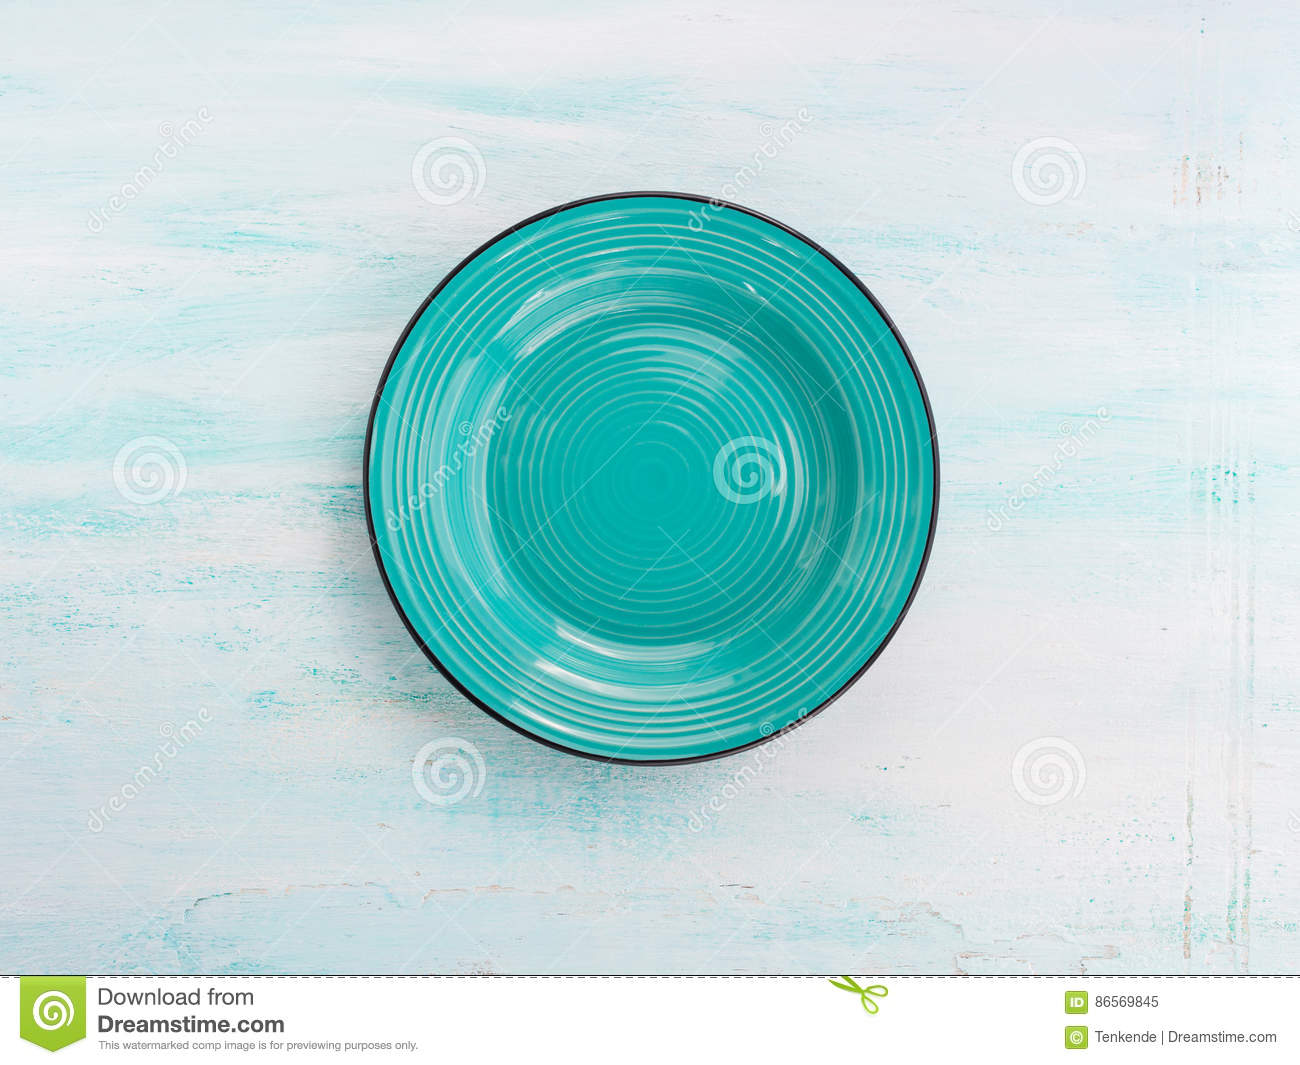 Download Pastel Color Ceramic Plate Dish Top View Background Stock Image - Image of spring, colorful: 86569845